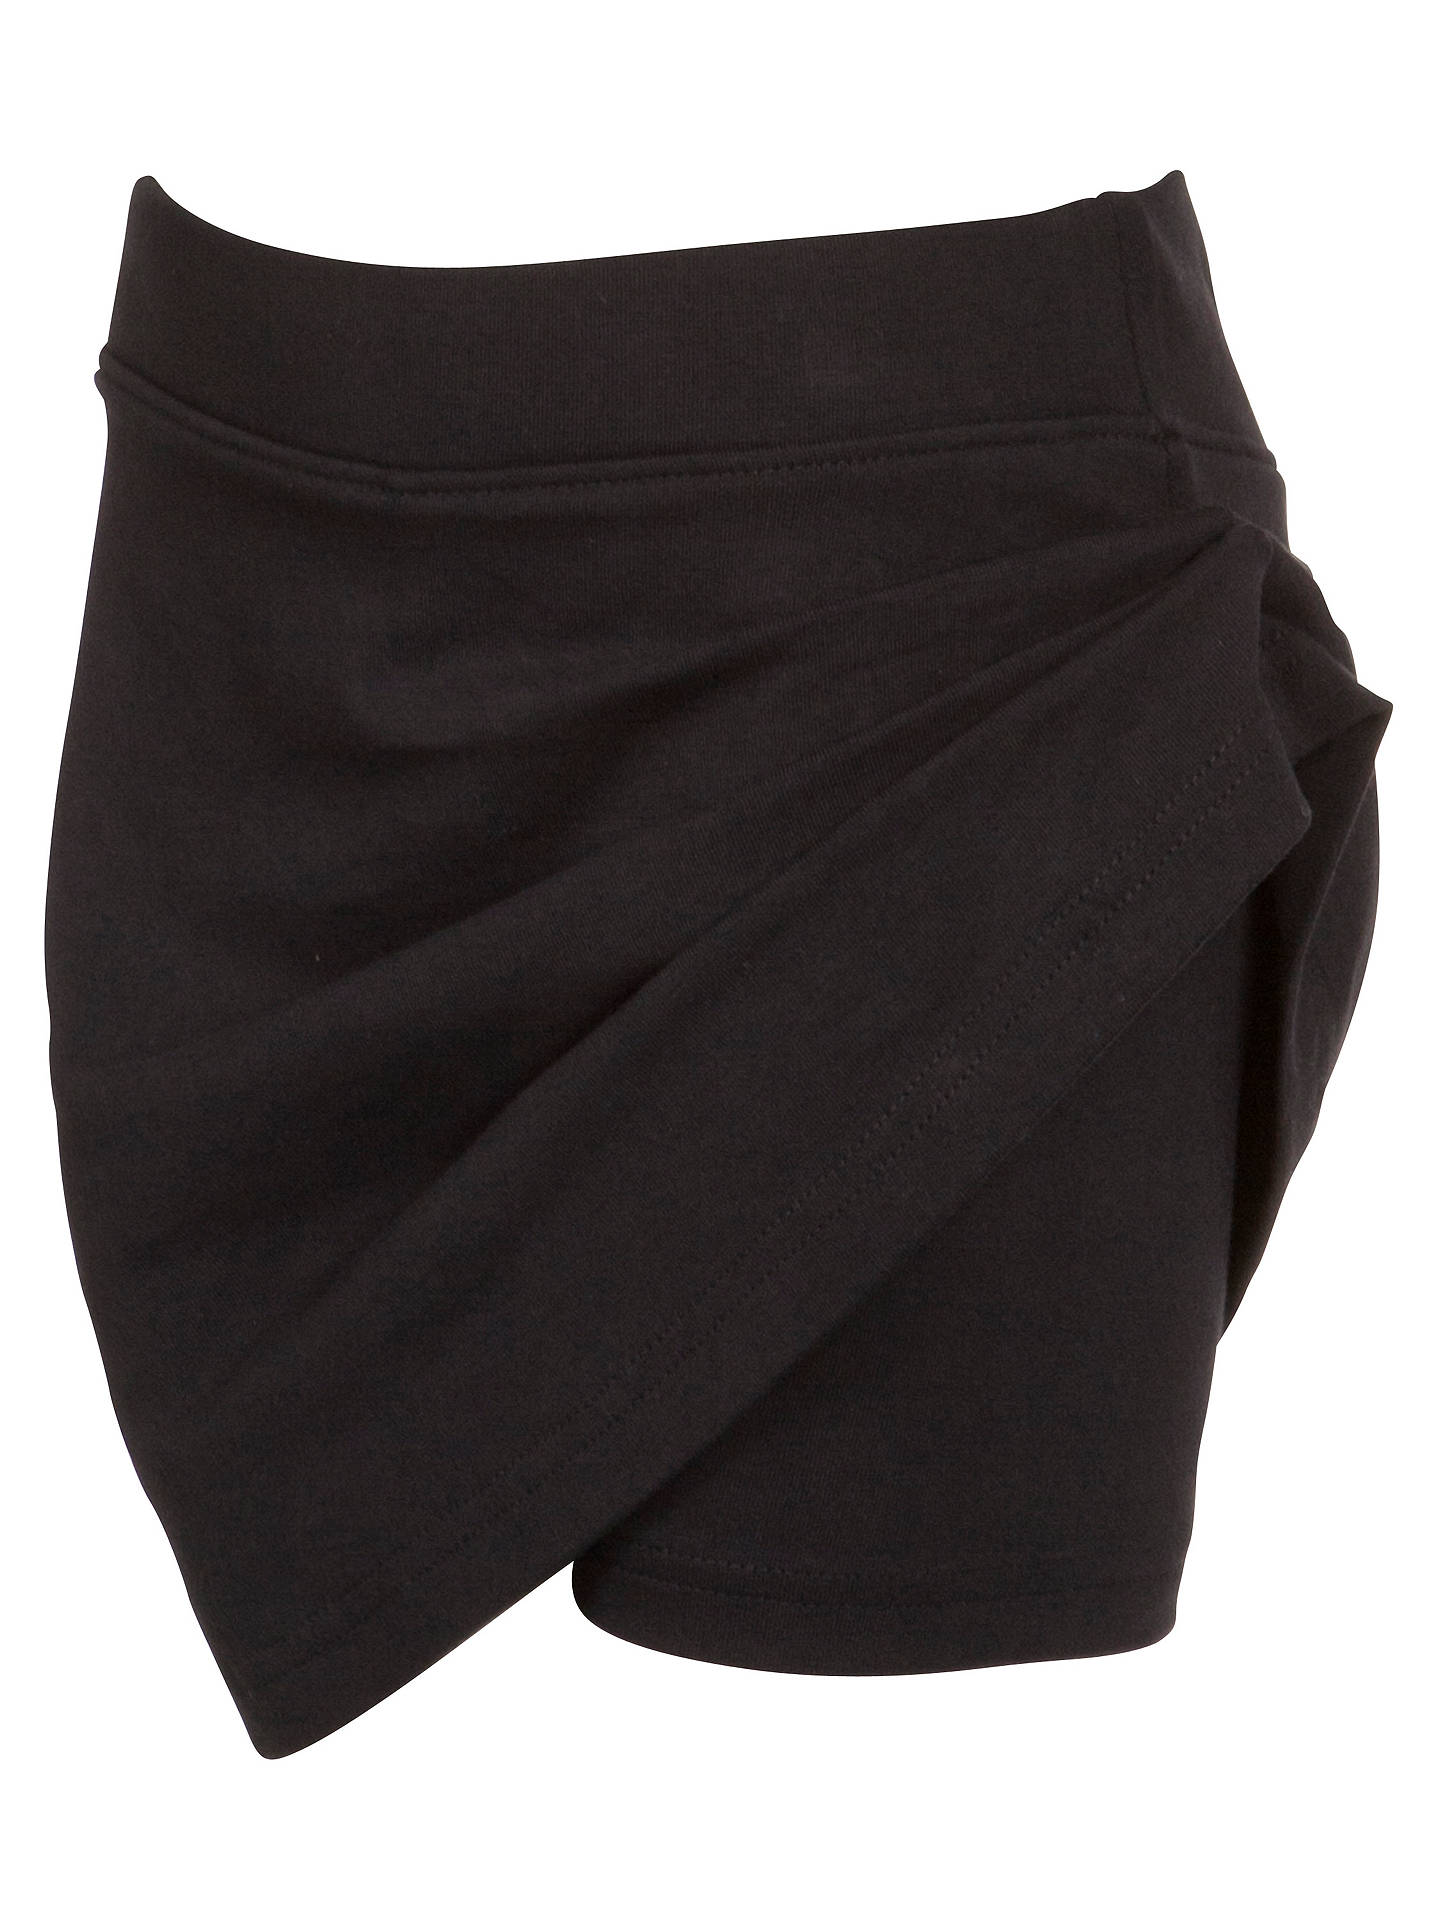 Buy John Lewis & Partners Girls' School Skort, Black, 5-6 years Online at johnlewis.com